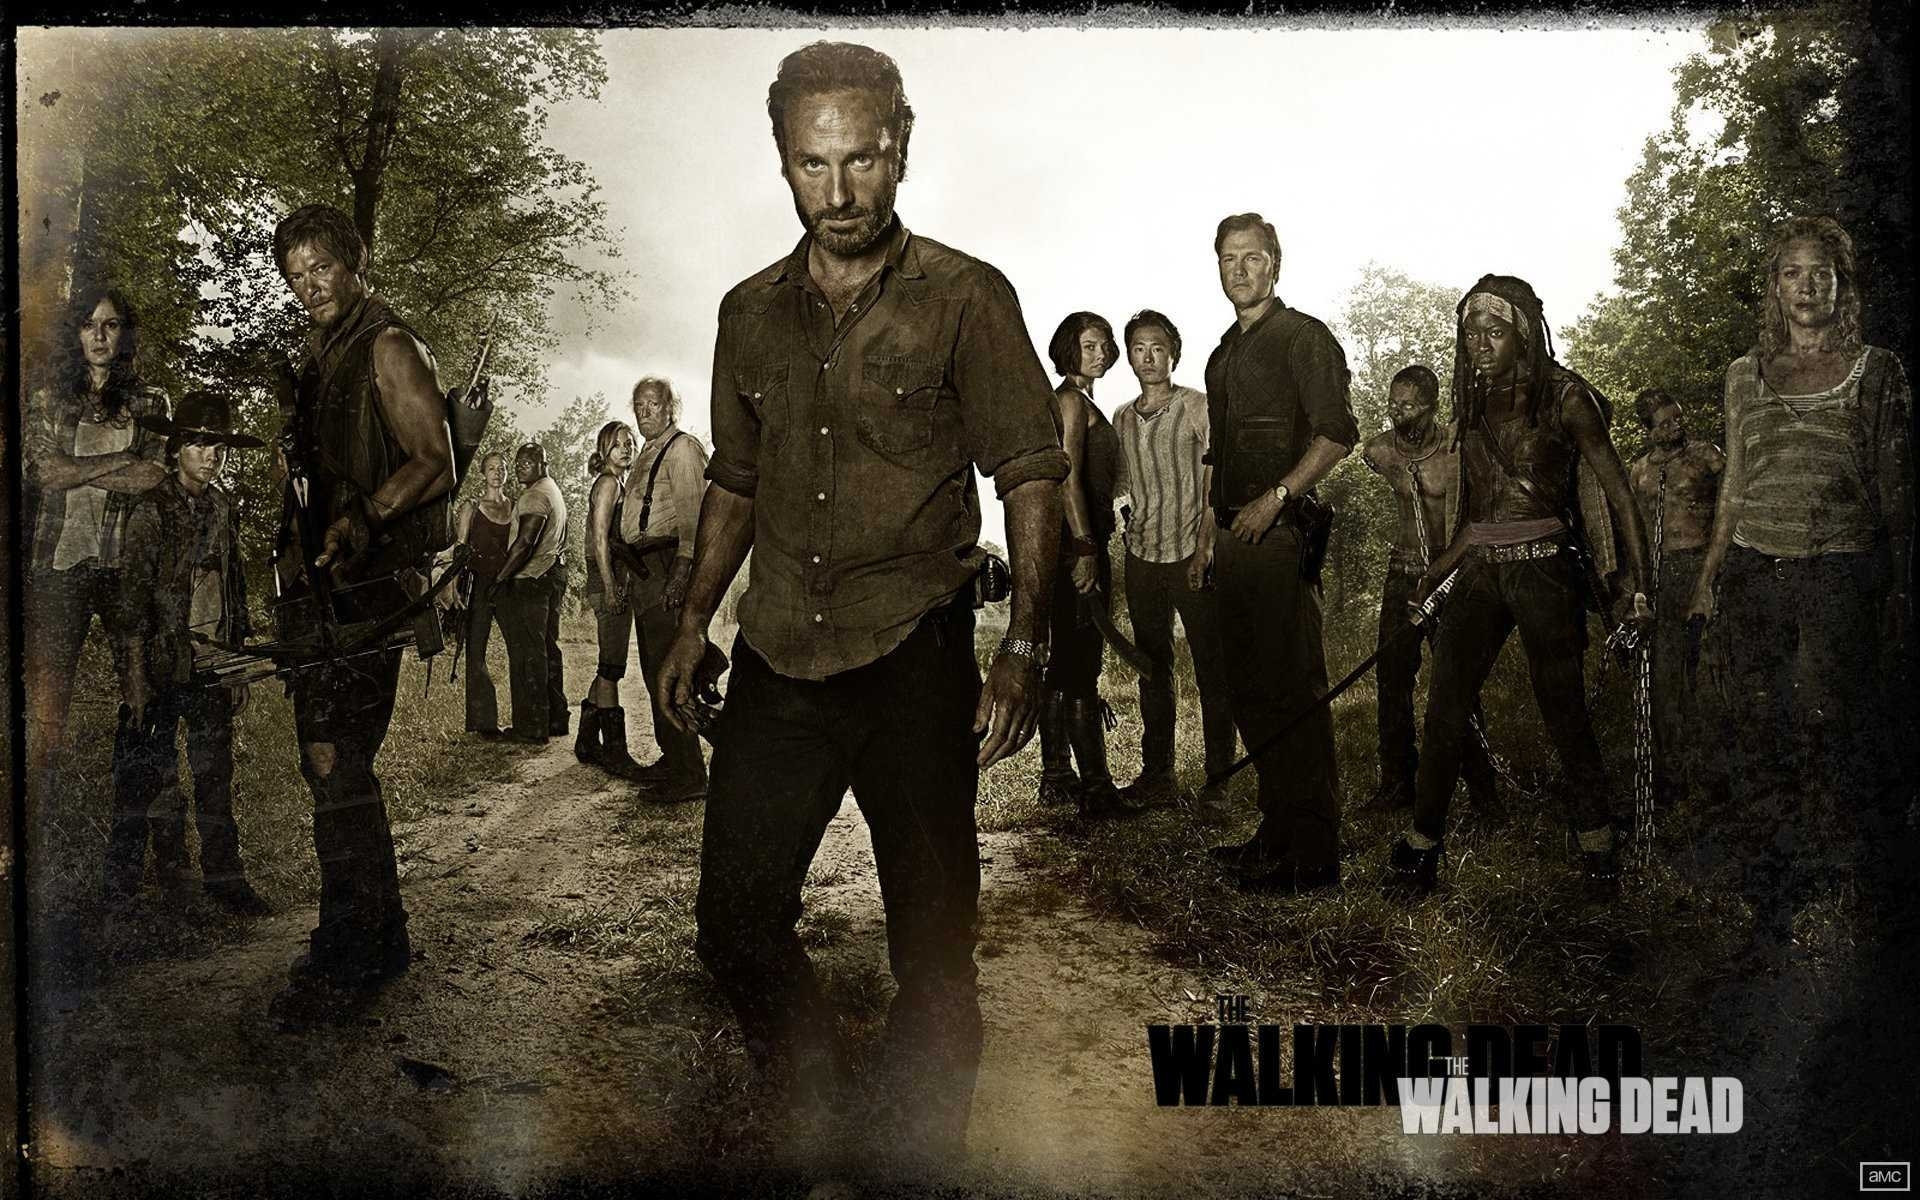 walking dead wallpaper high resolution of pc the wide definition